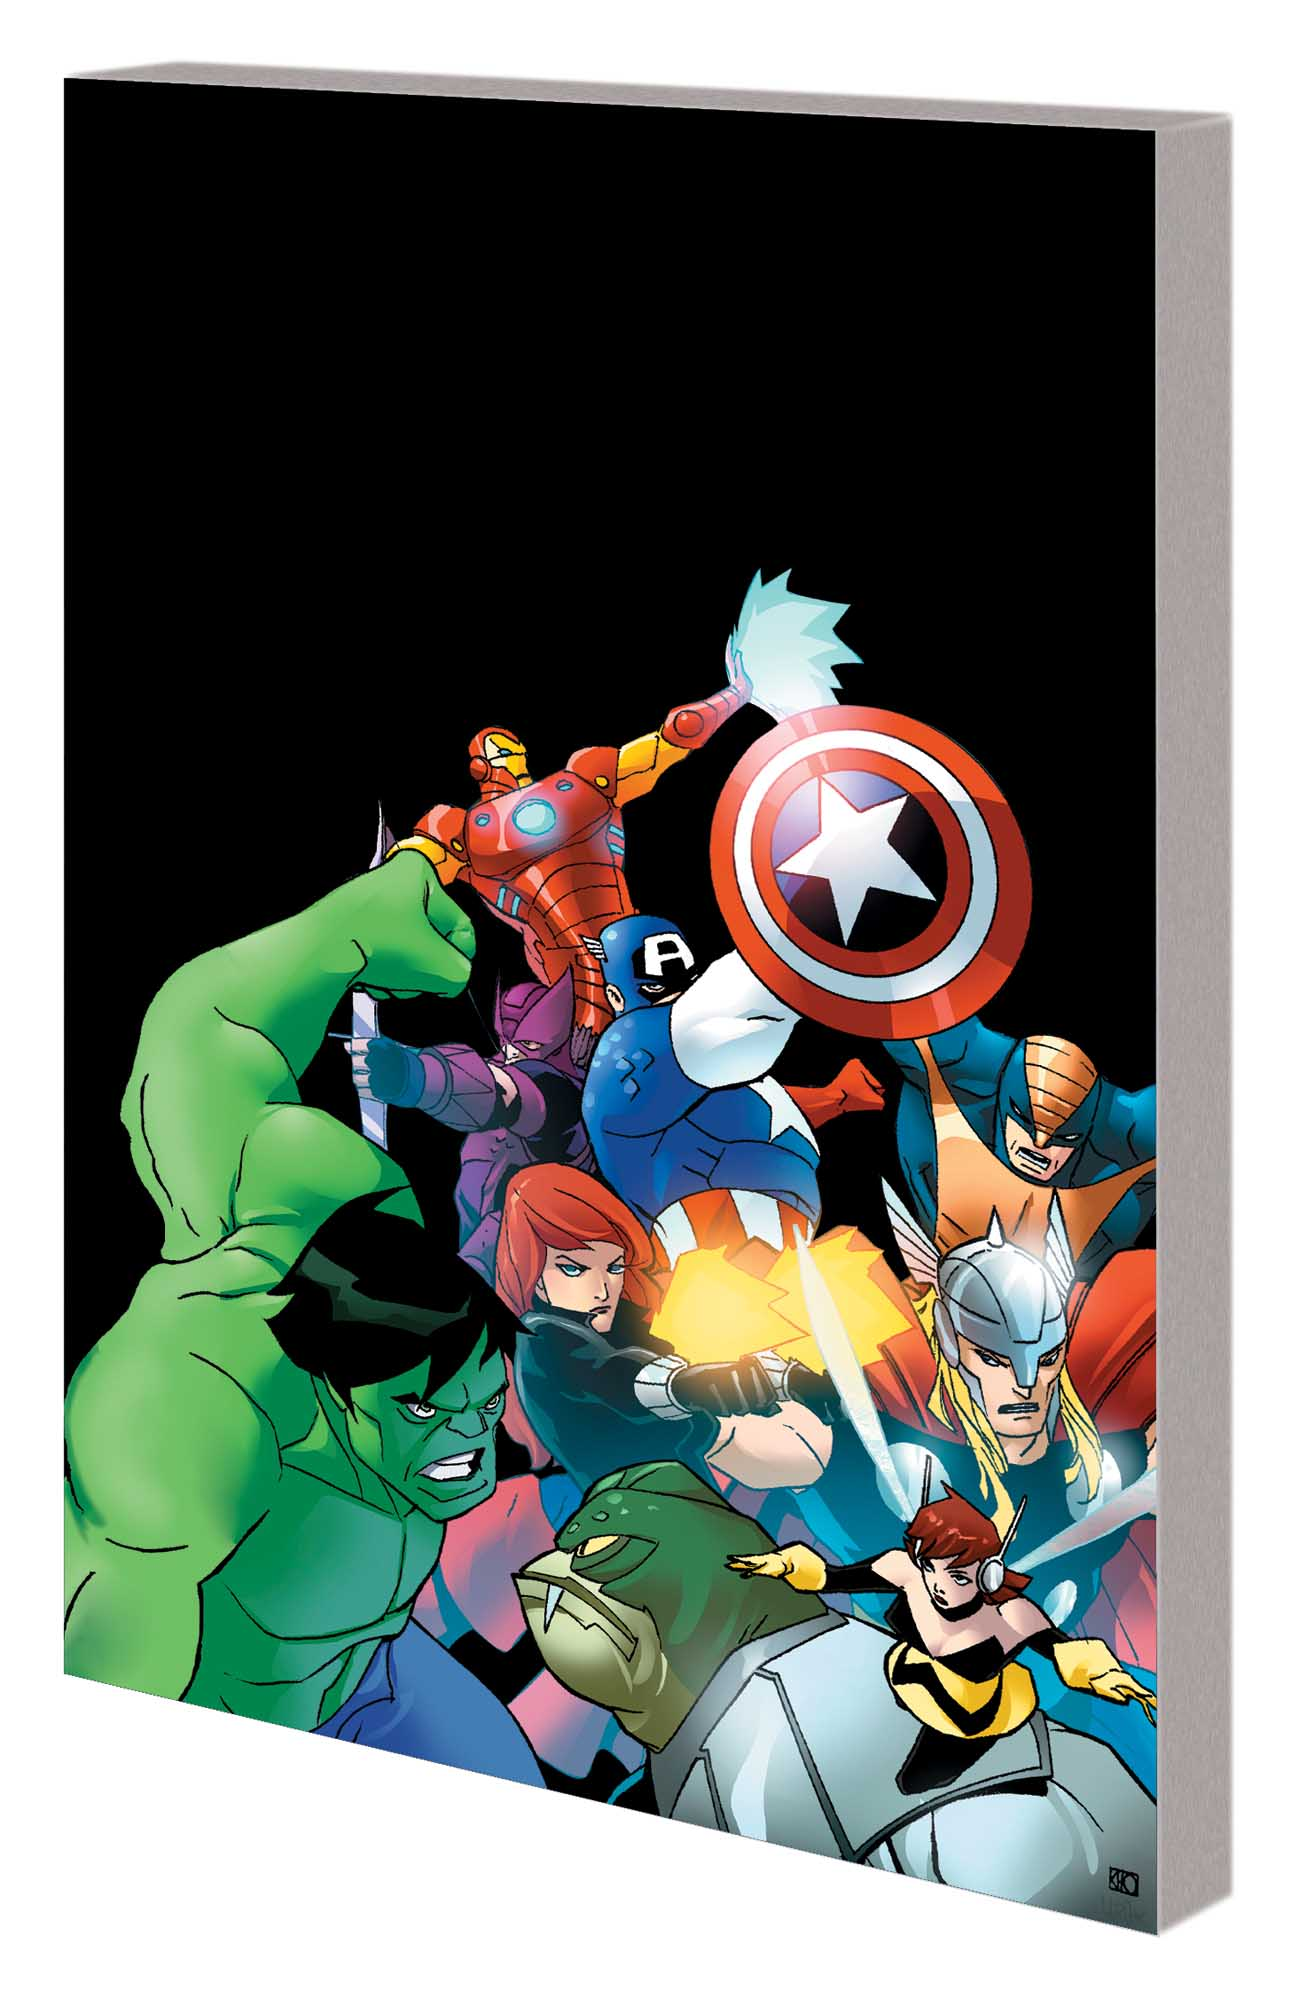 MARVEL UNIVERSE AVENGERS EARTH'S MIGHTIEST HEROES VOL. 2 DIGEST (Digest)